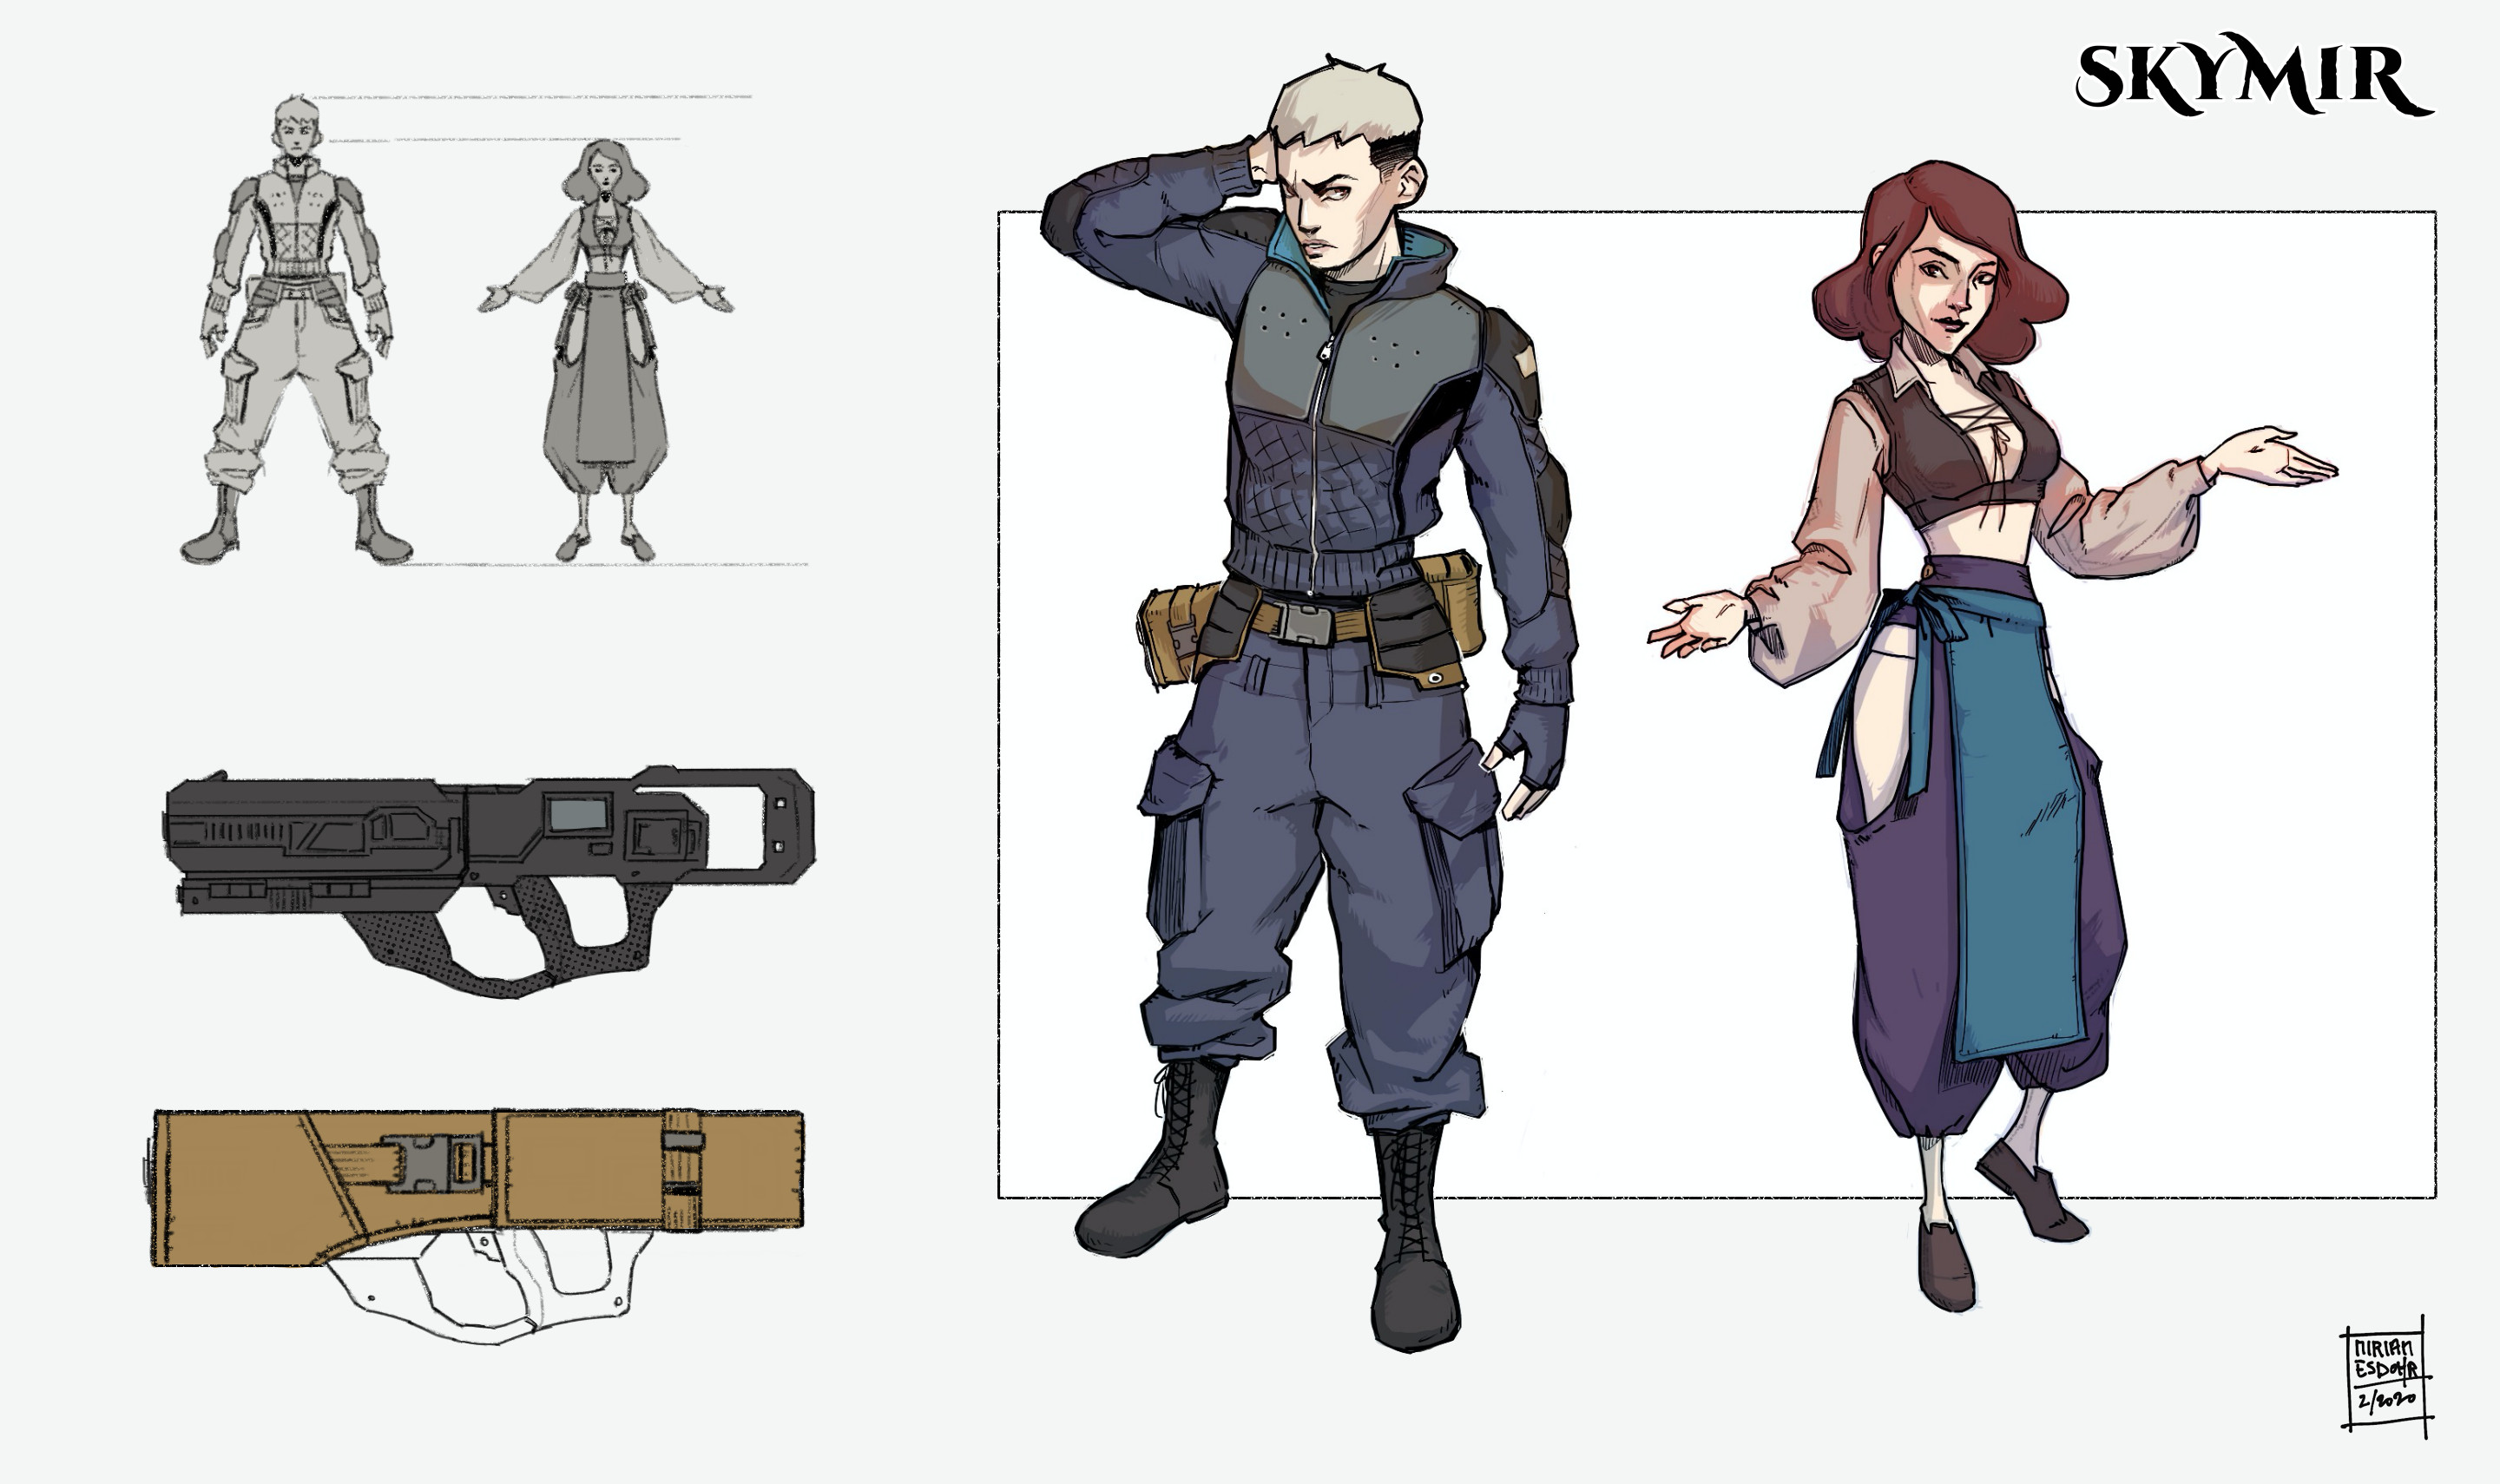 Final concepts of the two main characters